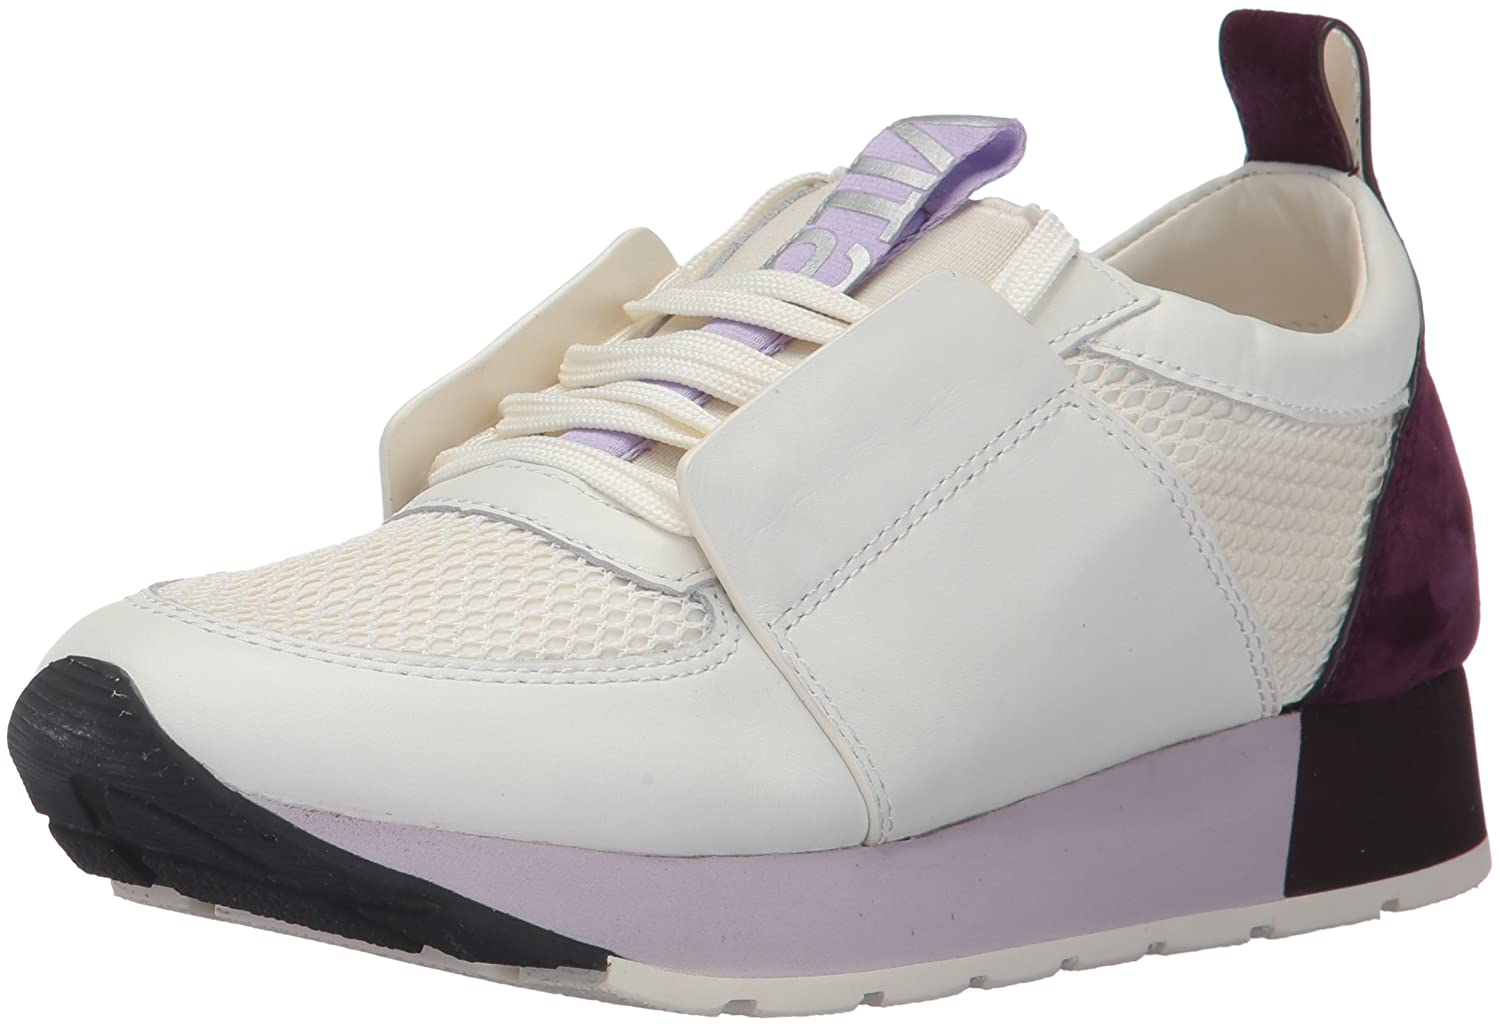 Dolce Vita Women's Yana Sneaker B071WLHLZC 10 B(M) US|White/Purple Leather